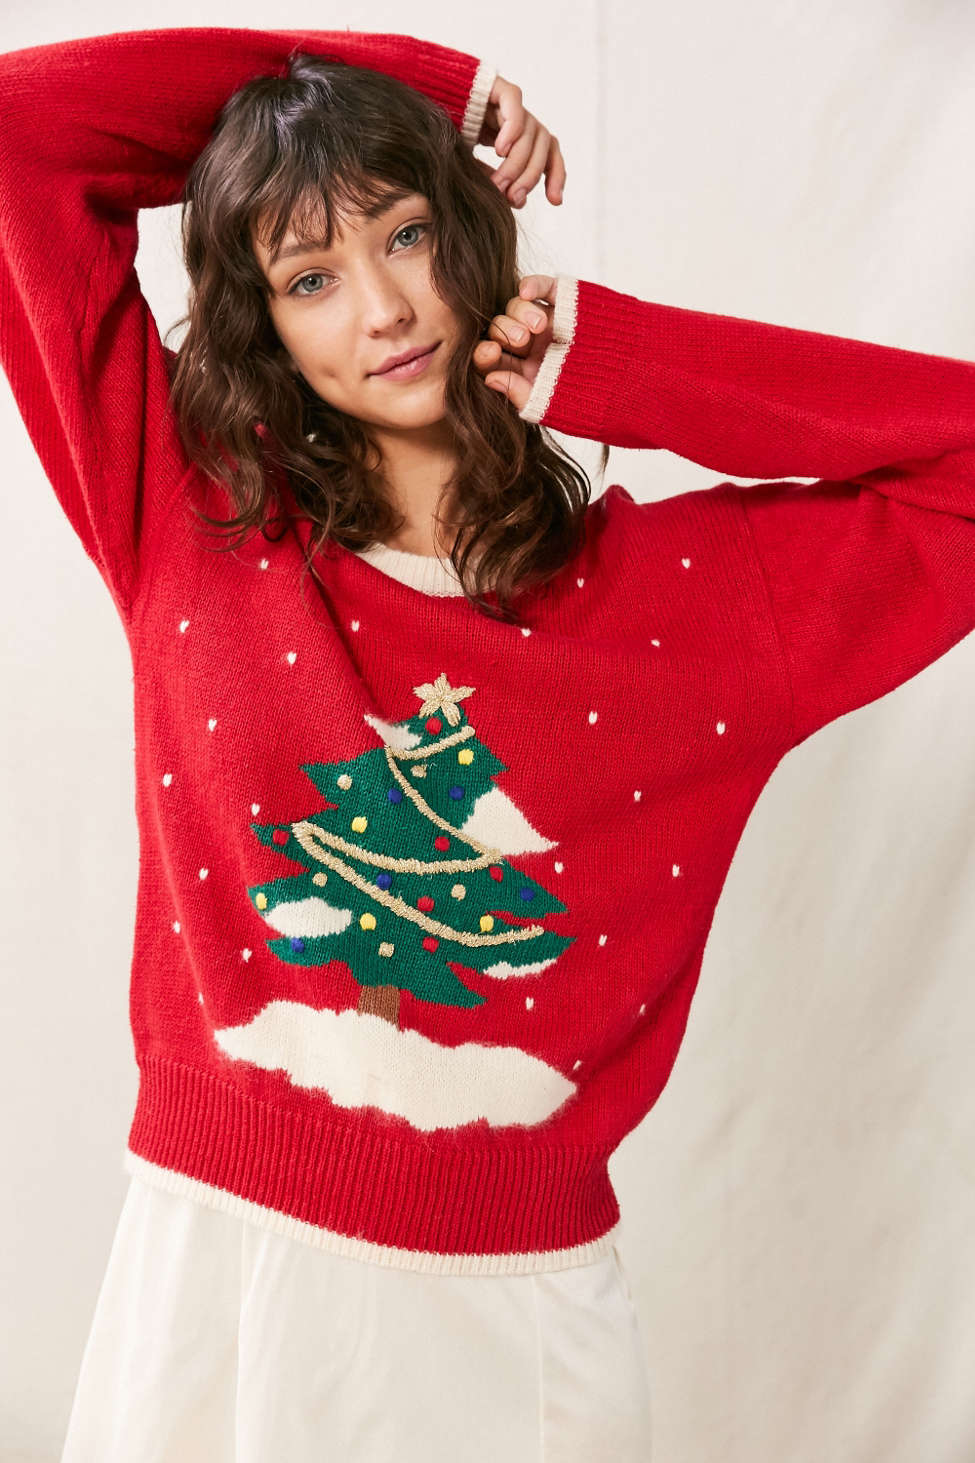 http://www.urbanoutfitters.com/urban/catalog/productdetail.jsp?id=40796831&category=W_APP_SWEATERS